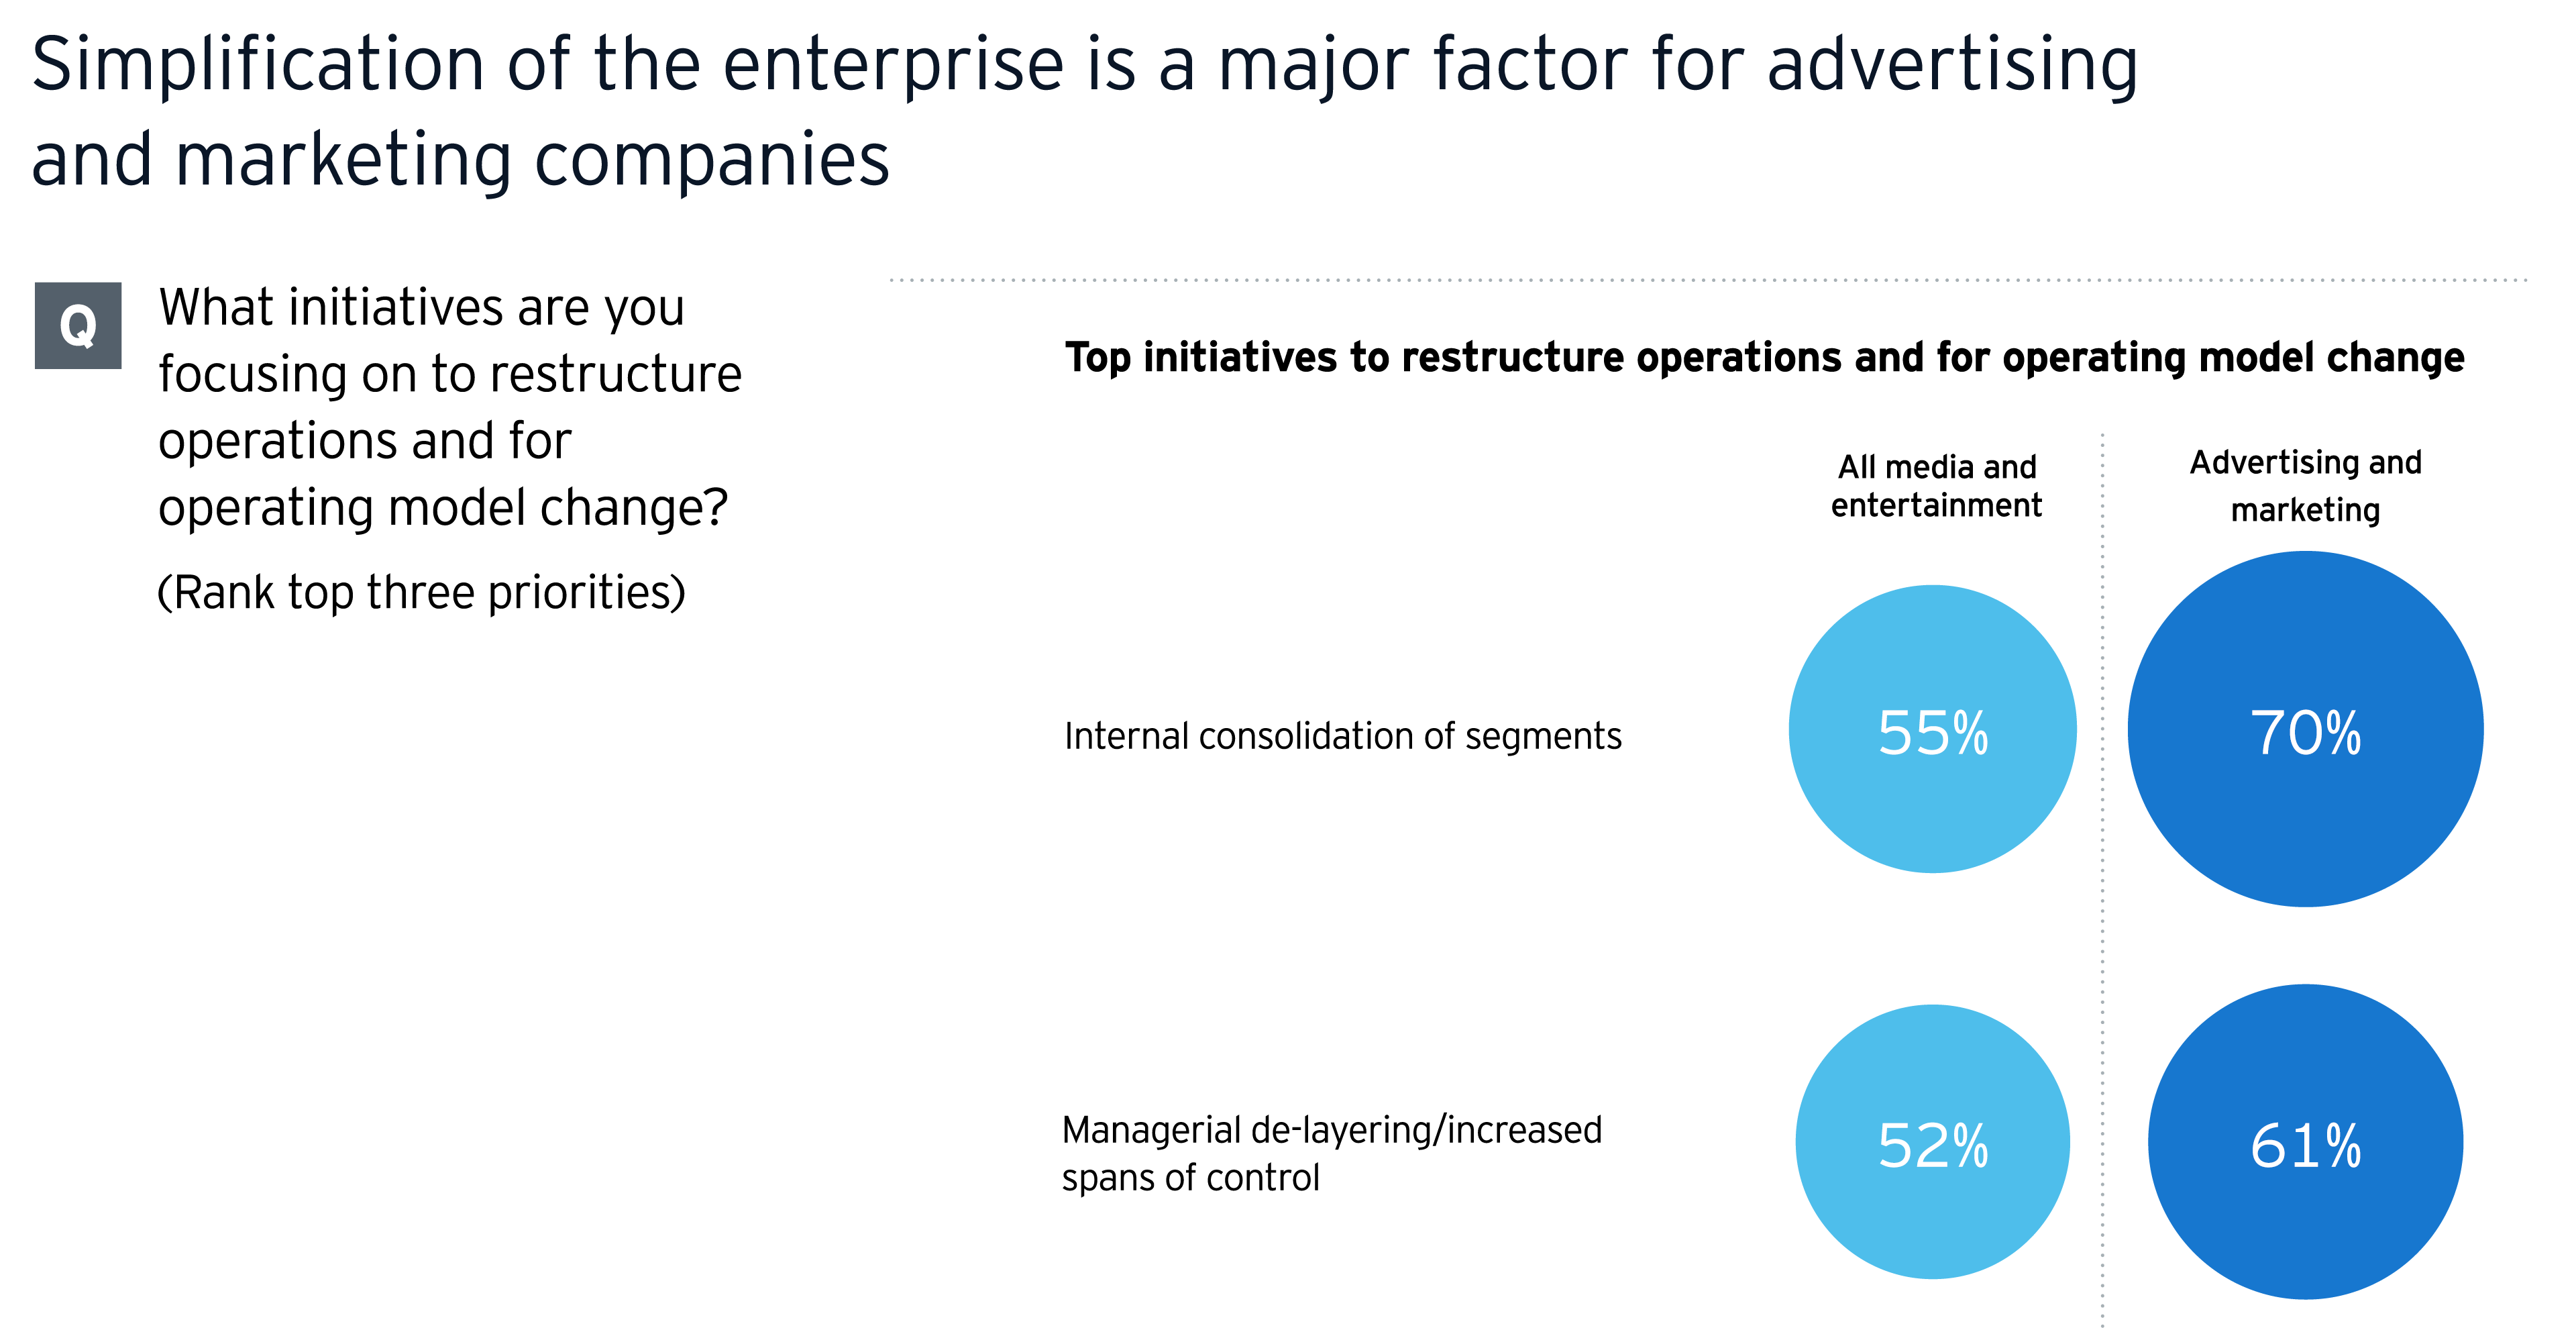 Simplification of the enterprise is a major factor for advertising and marketing companies